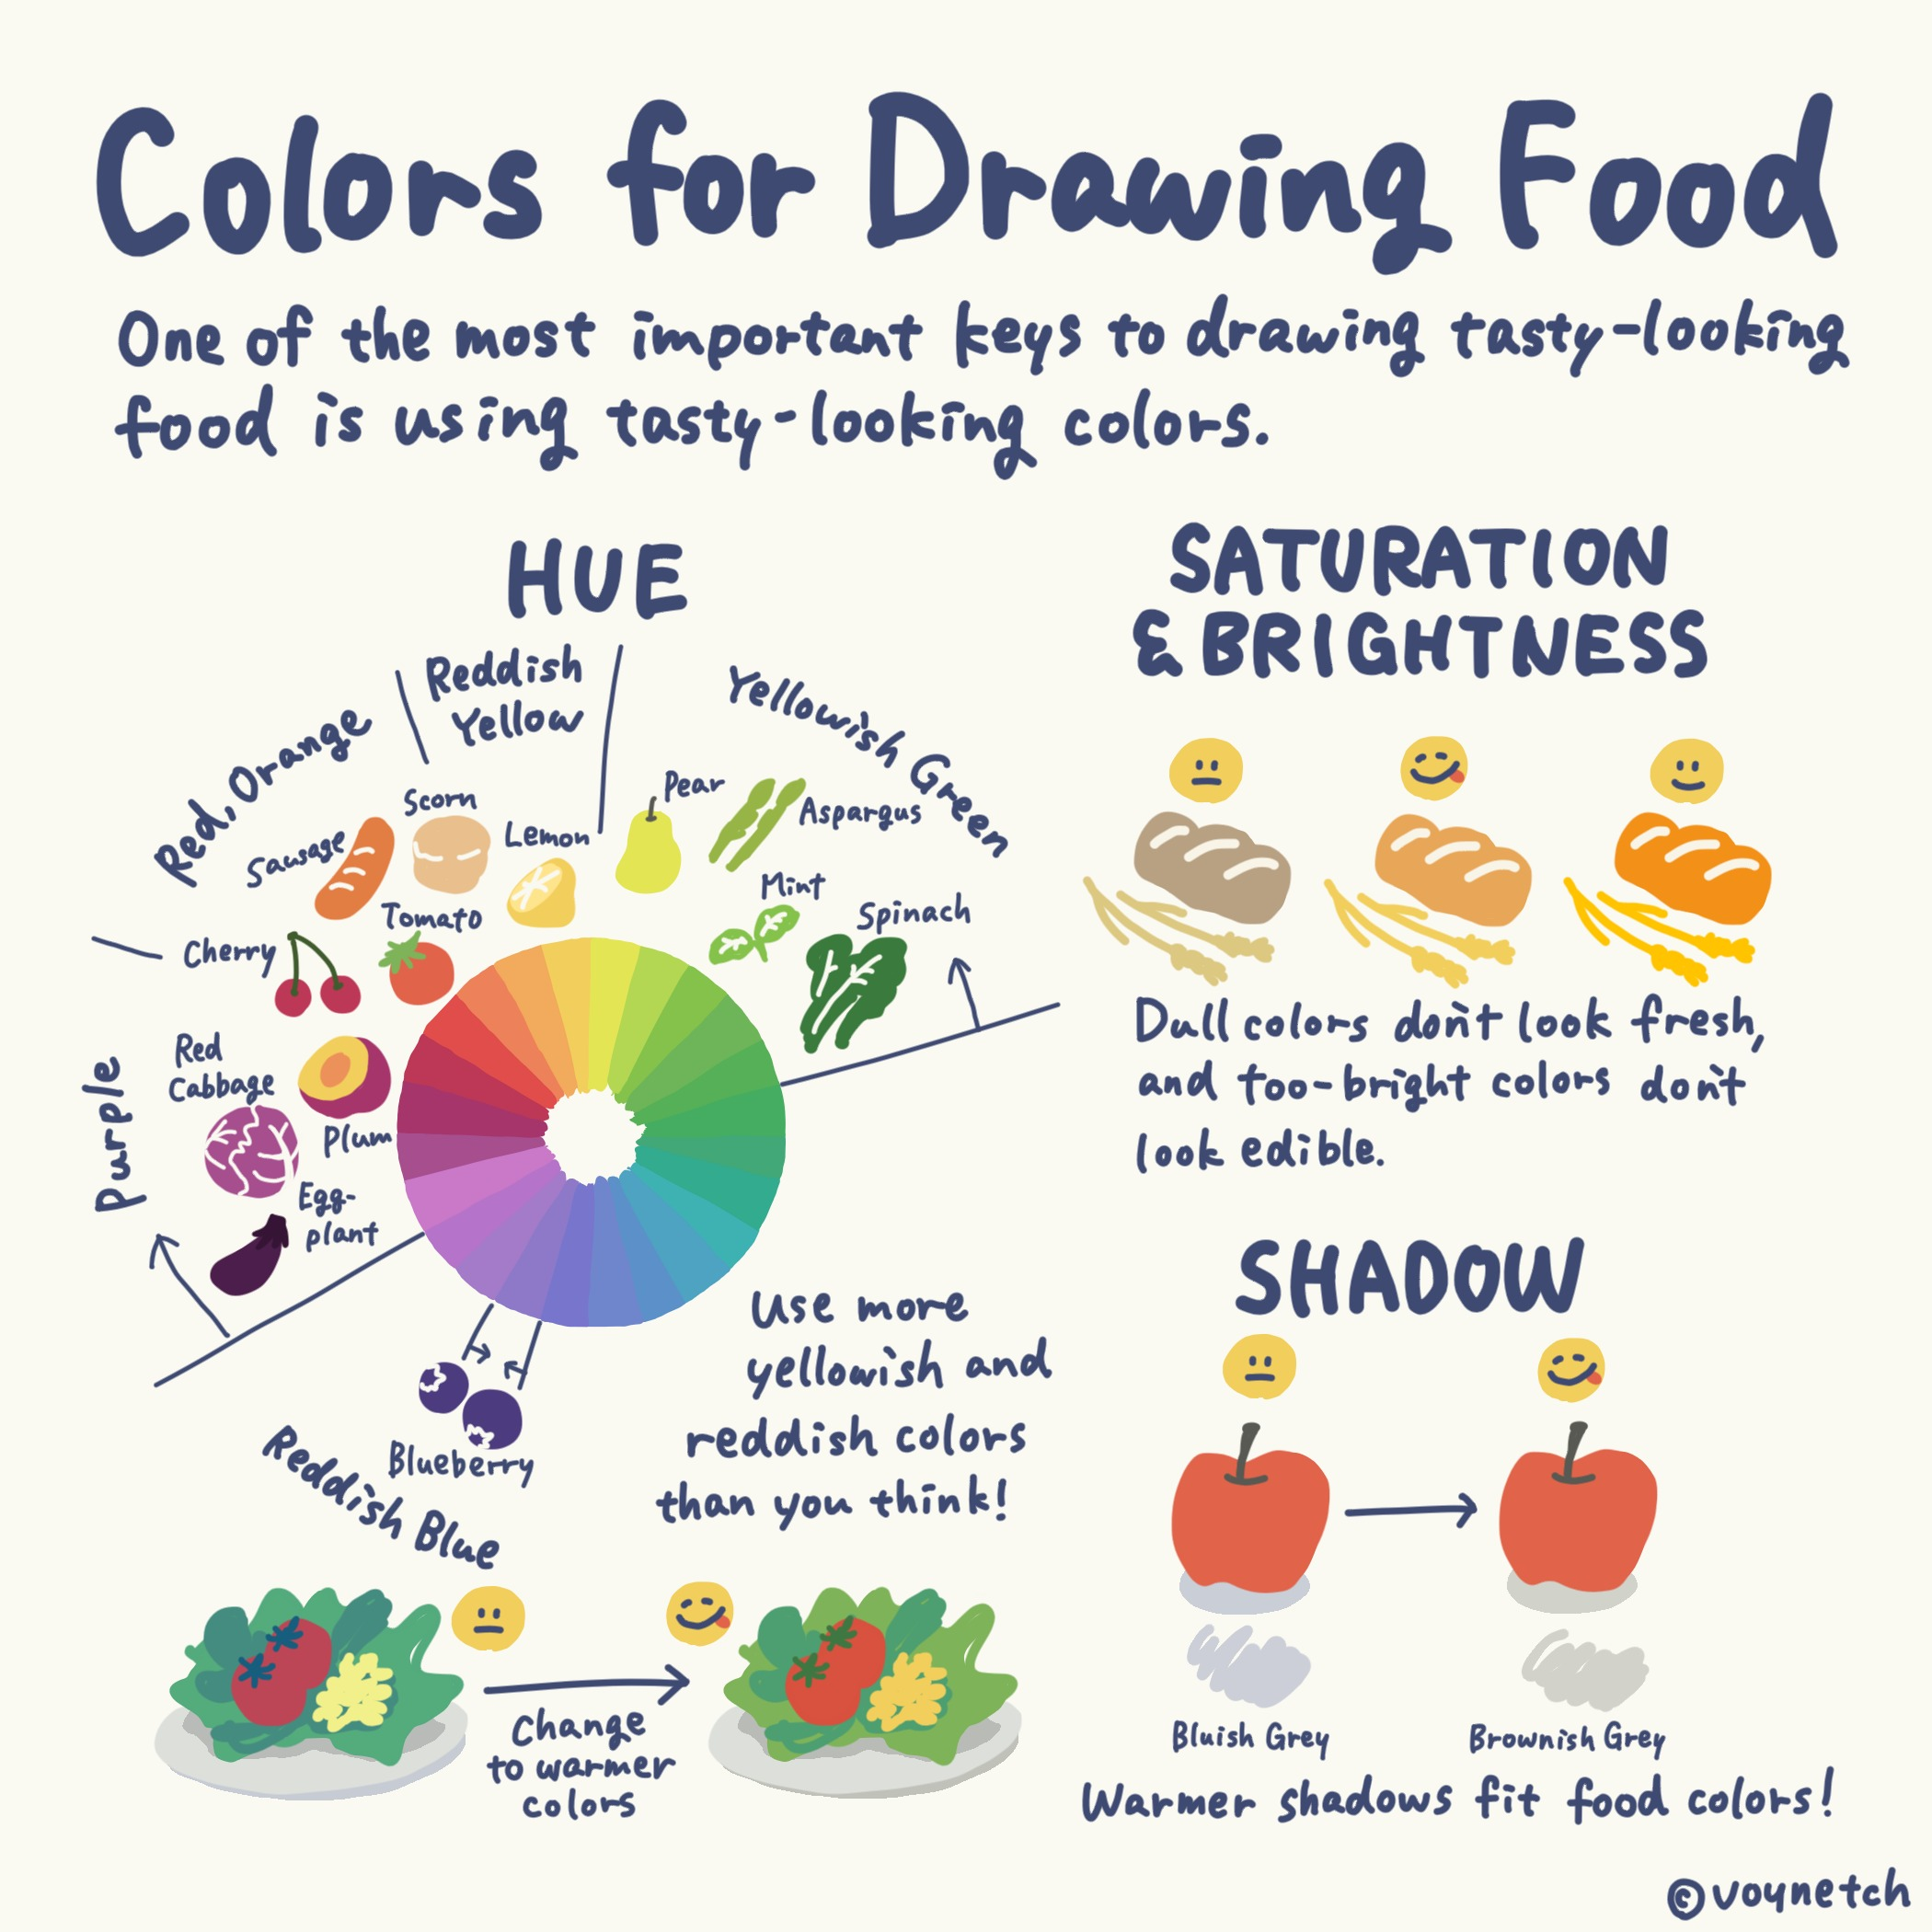 Colors for Drawing Food Image